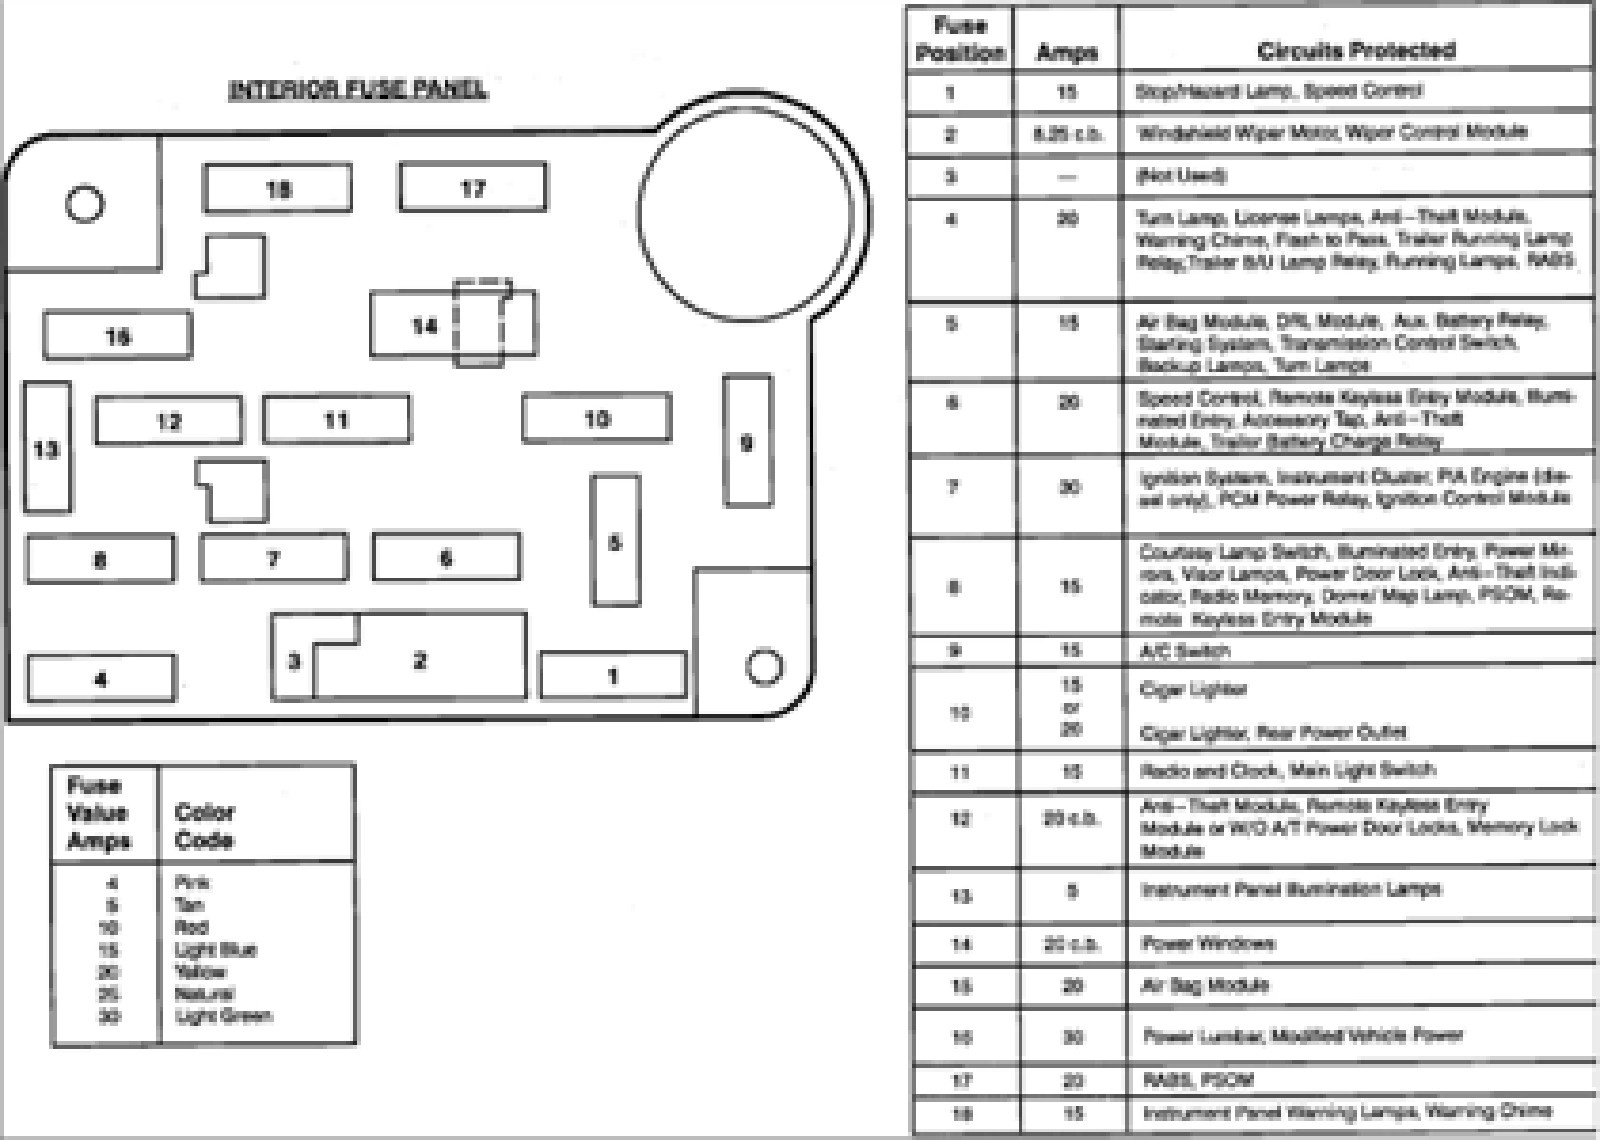 2002 Gmc 3500 Fuse Box Diagram Great Installation Of Wiring Gm Van Ford E350 Schematic Diagrams Rh 46 Koch Foerderbandtrommeln De 1962 Savana